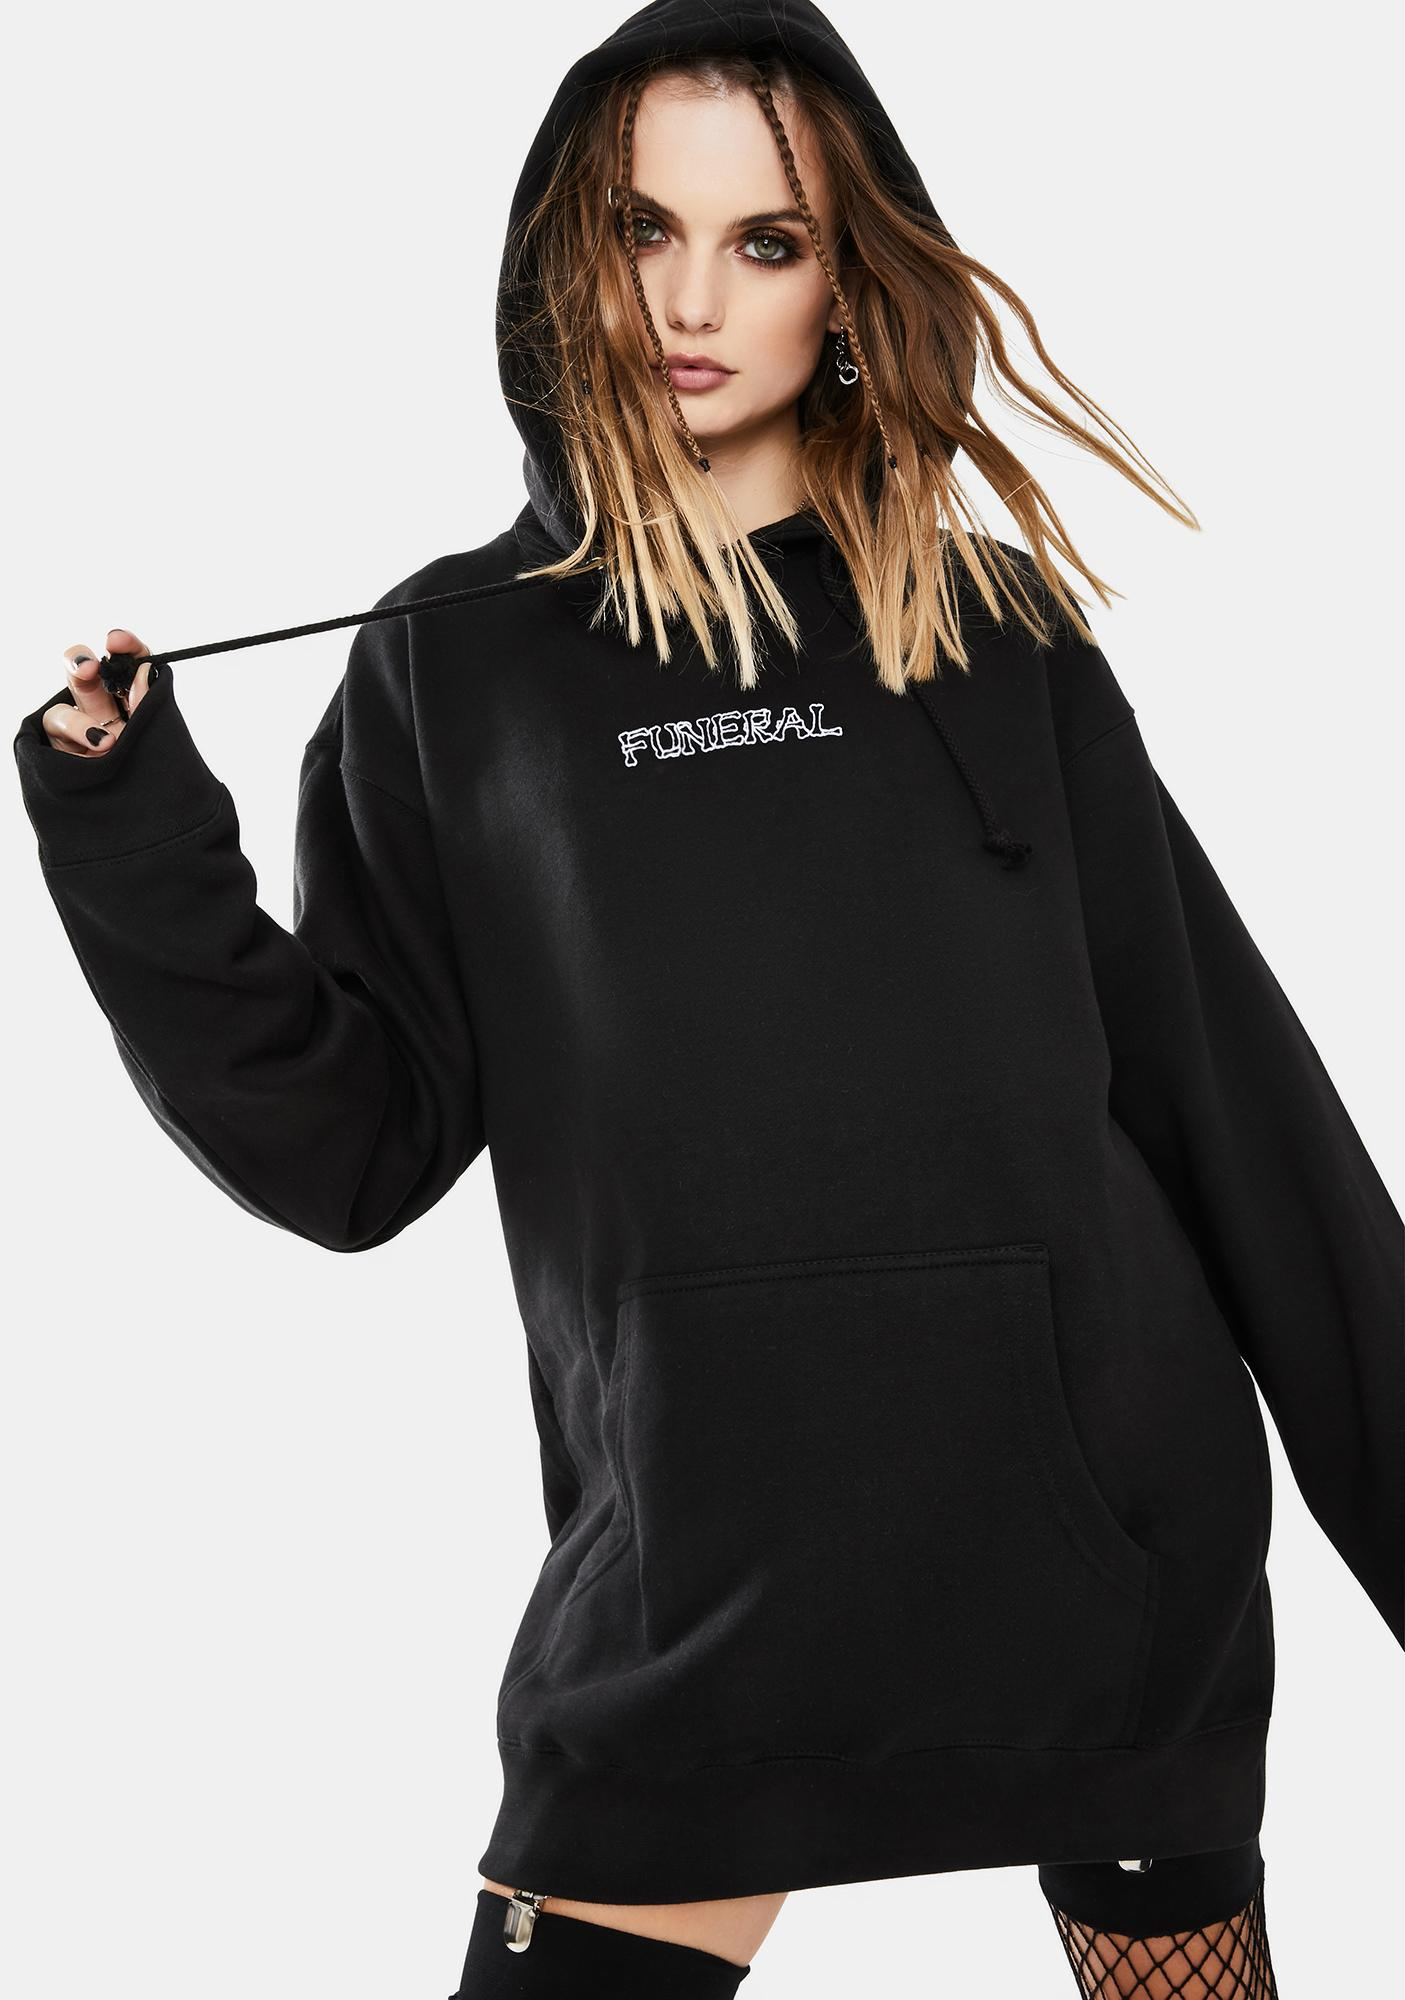 Funeral Logo Keyhole Graphic Hoodie